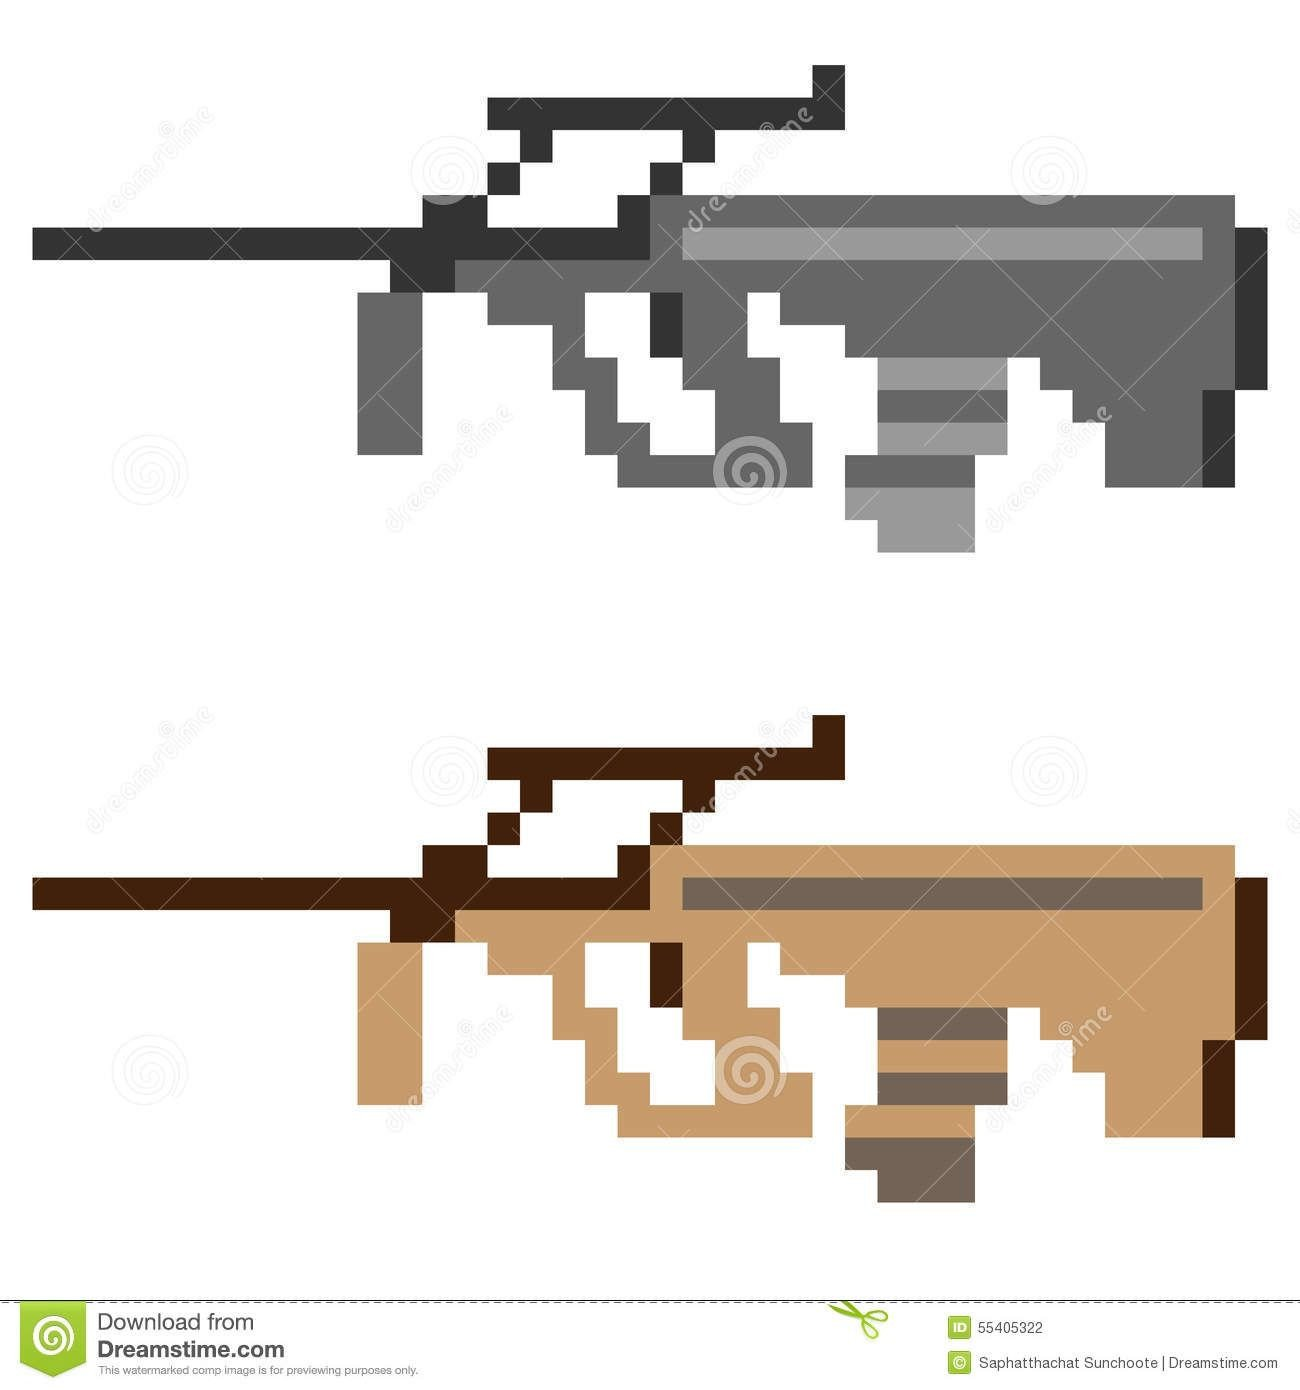 Minecraft Gun Pixel Art Illustration Pixel Art Icon Gun assault Rifle Illustration